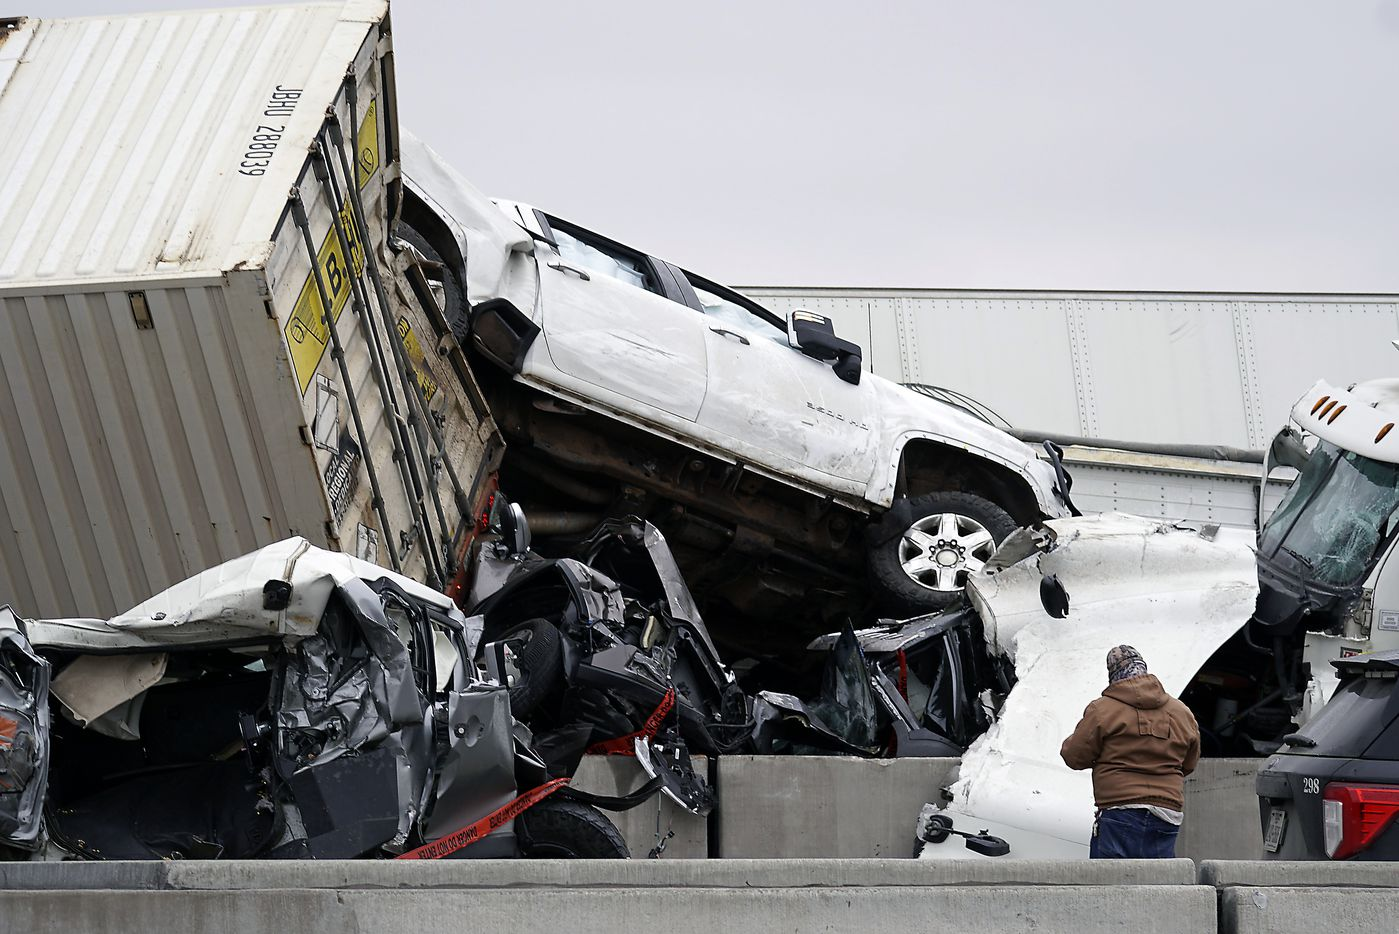 Mass casualty wreck on I-35W and Northside Drive in Fort Worth, Texas on Thursday, February 11, 2021. (Lawrence Jenkins/Special Contributor)